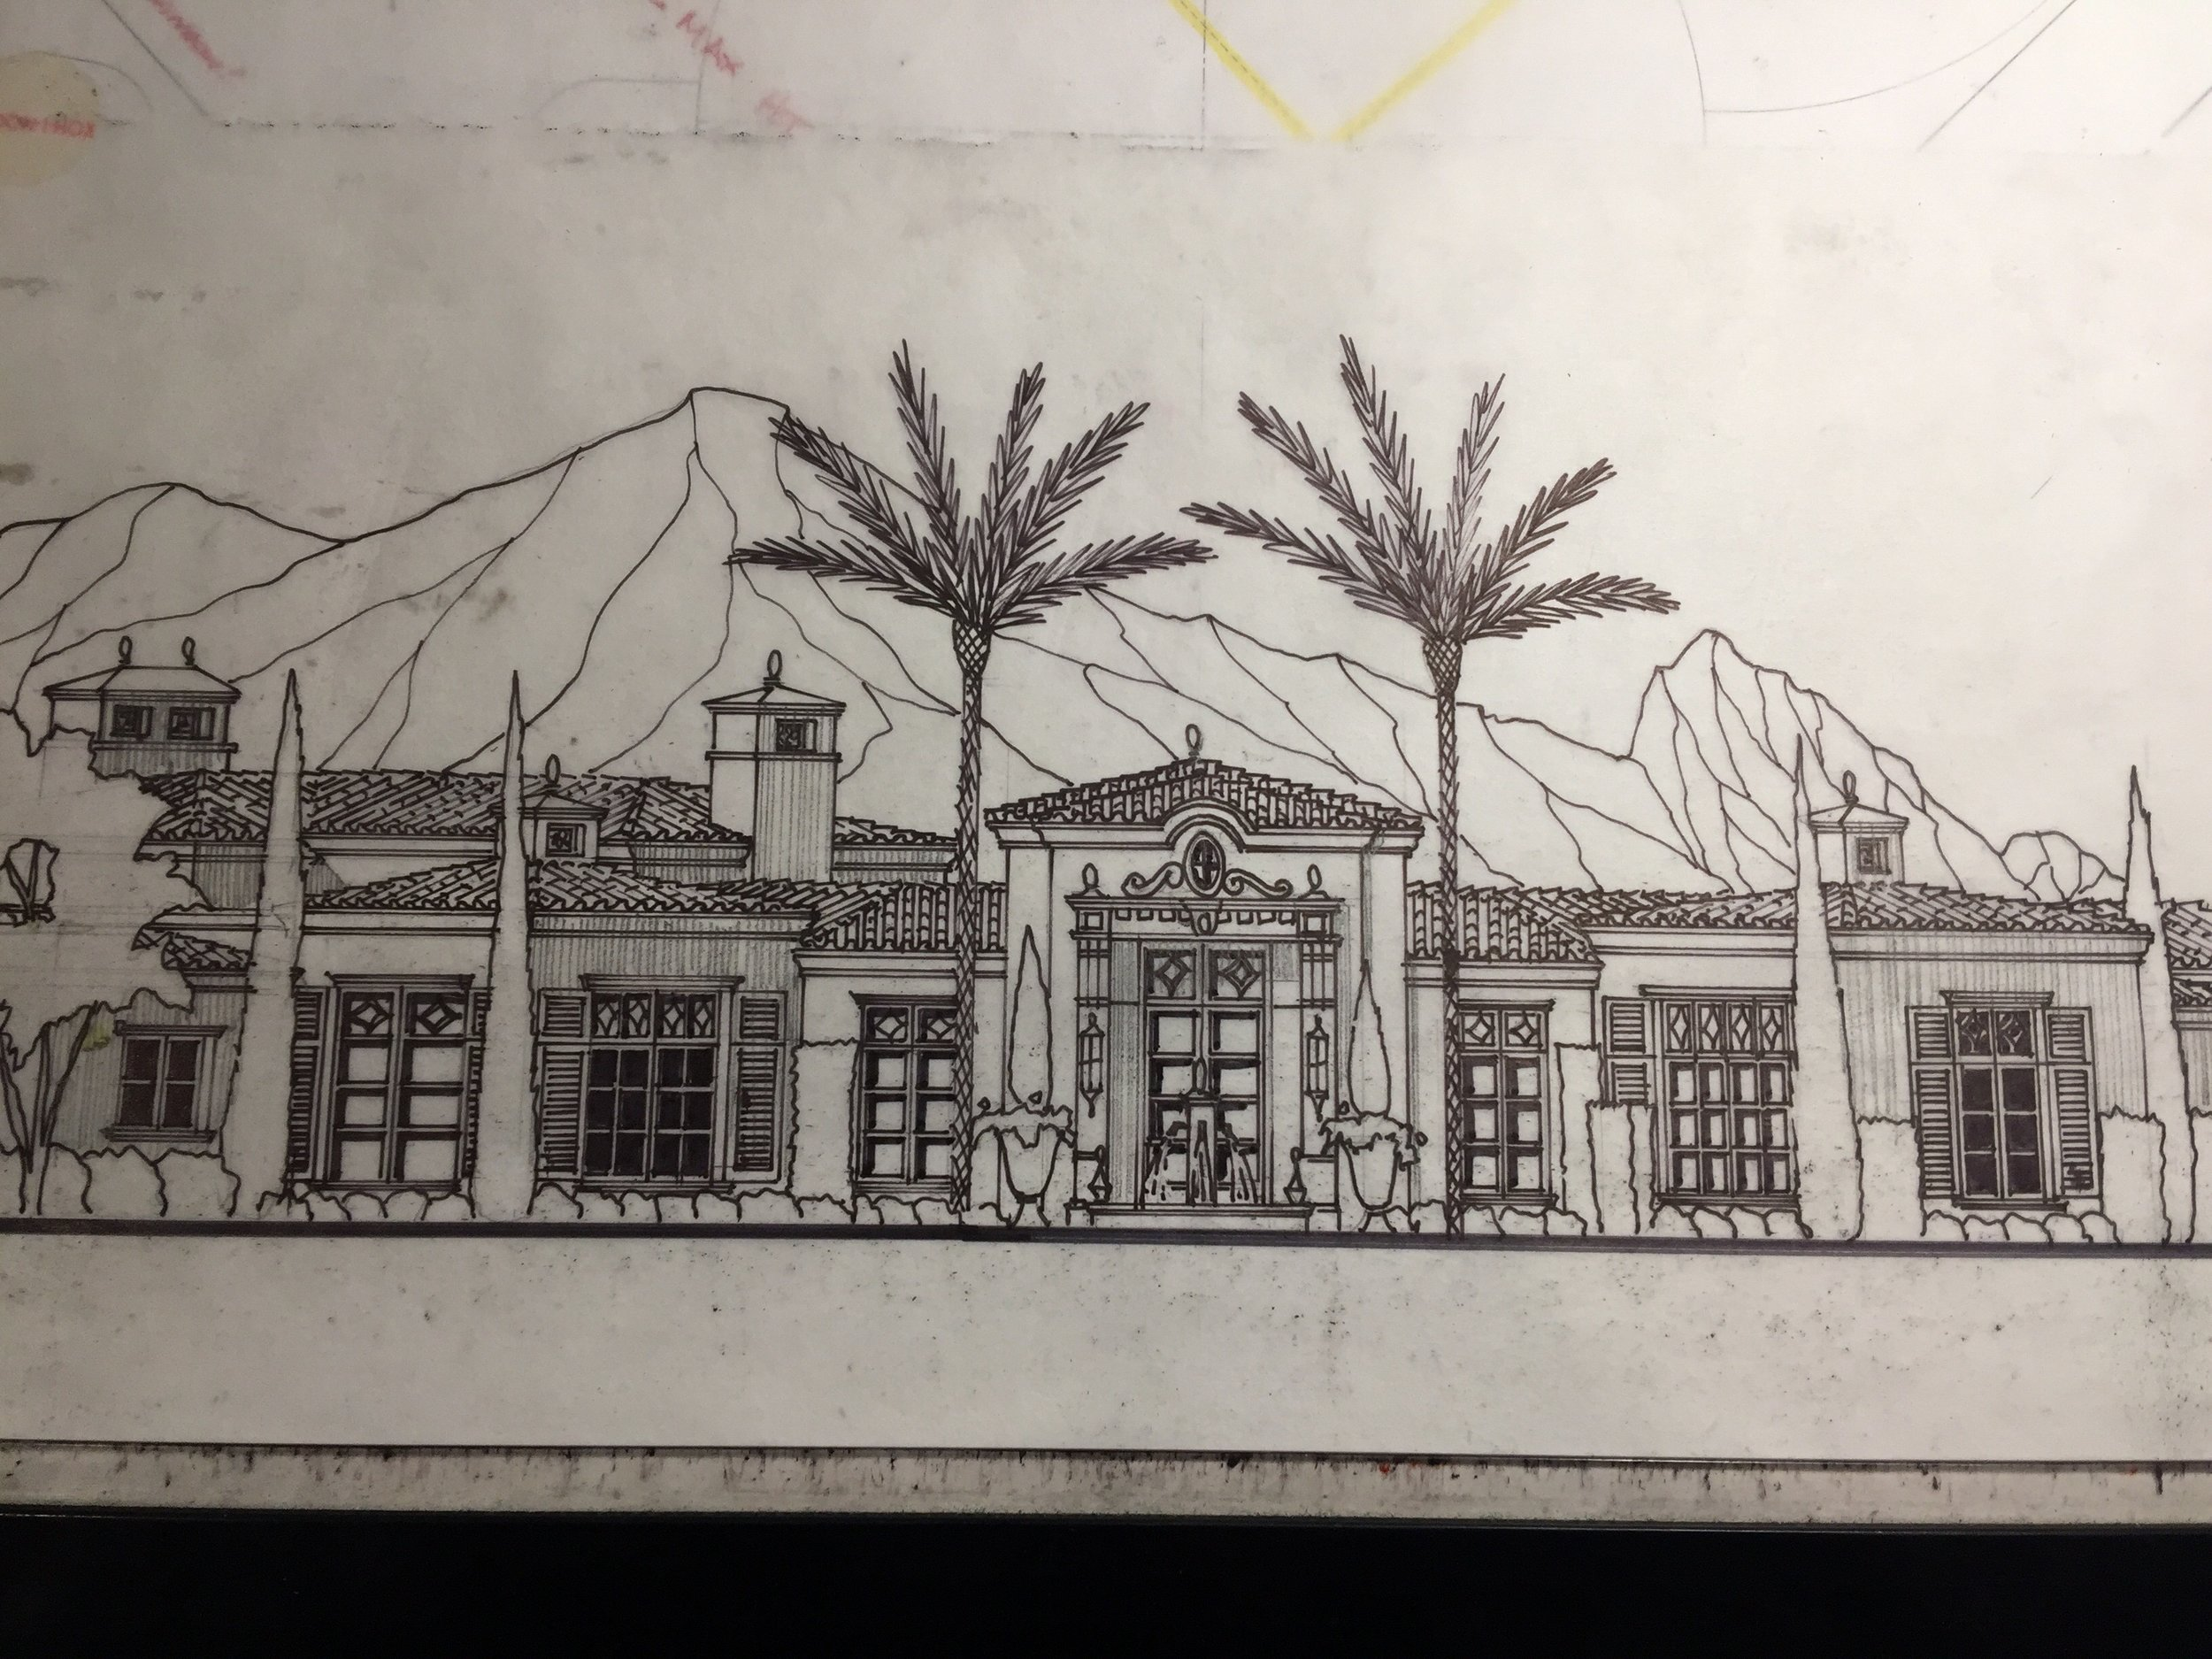 Concept rendering for a new Candelaria Design home in Paradise Valley